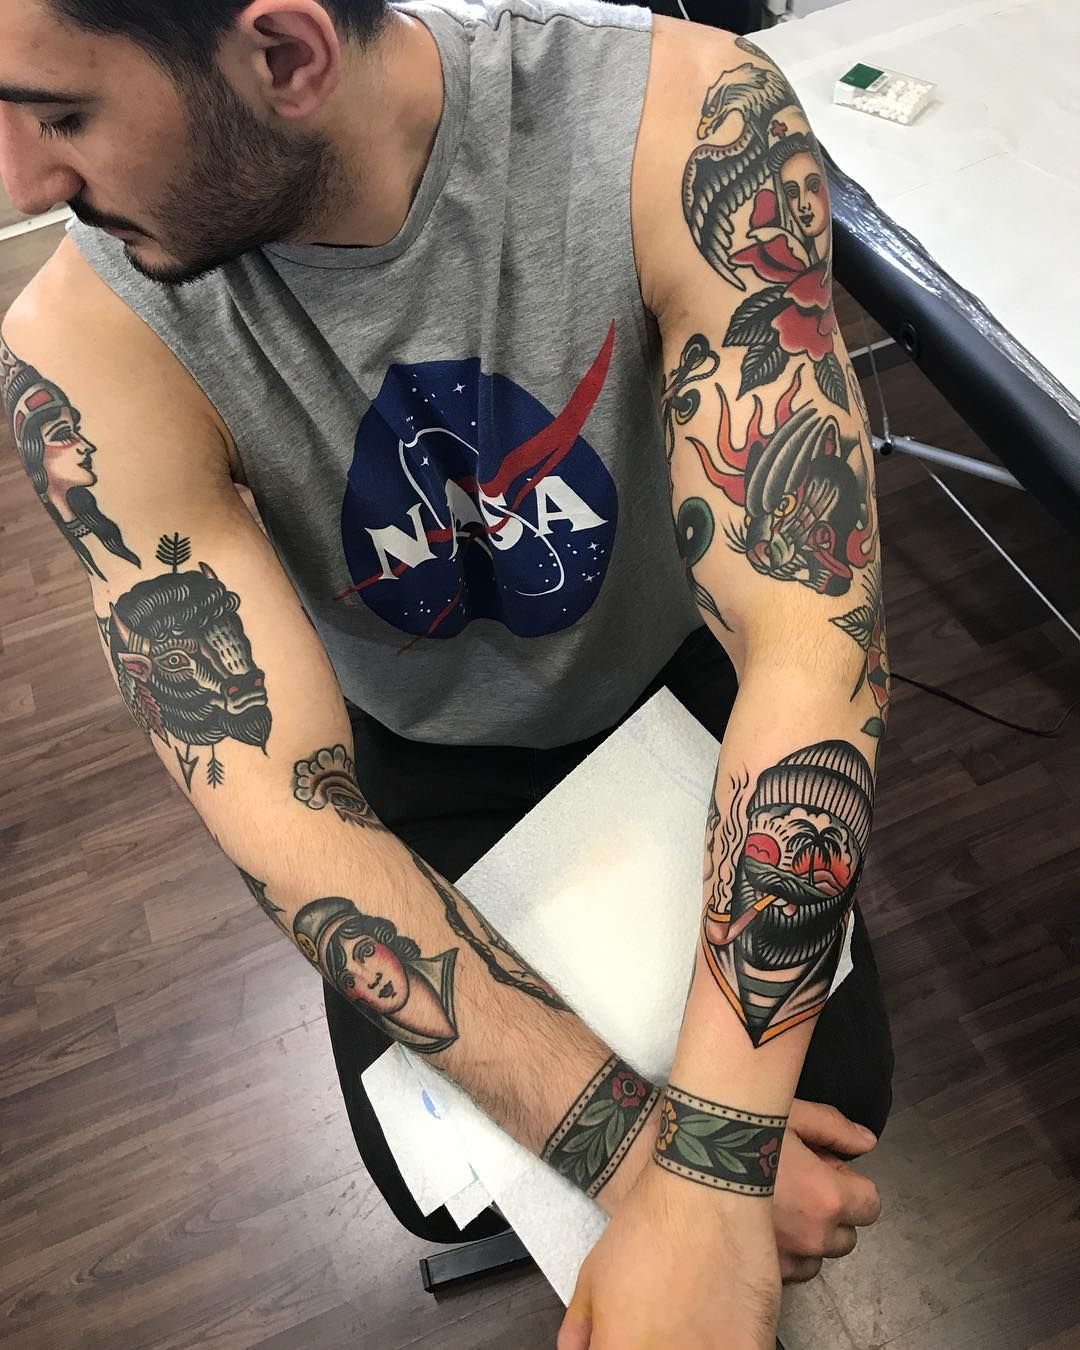 La Imagen Puede Contener 3 Personas Arm Tattoos For Guys Traditional Tattoo Sleeve Traditional Tattoo Love